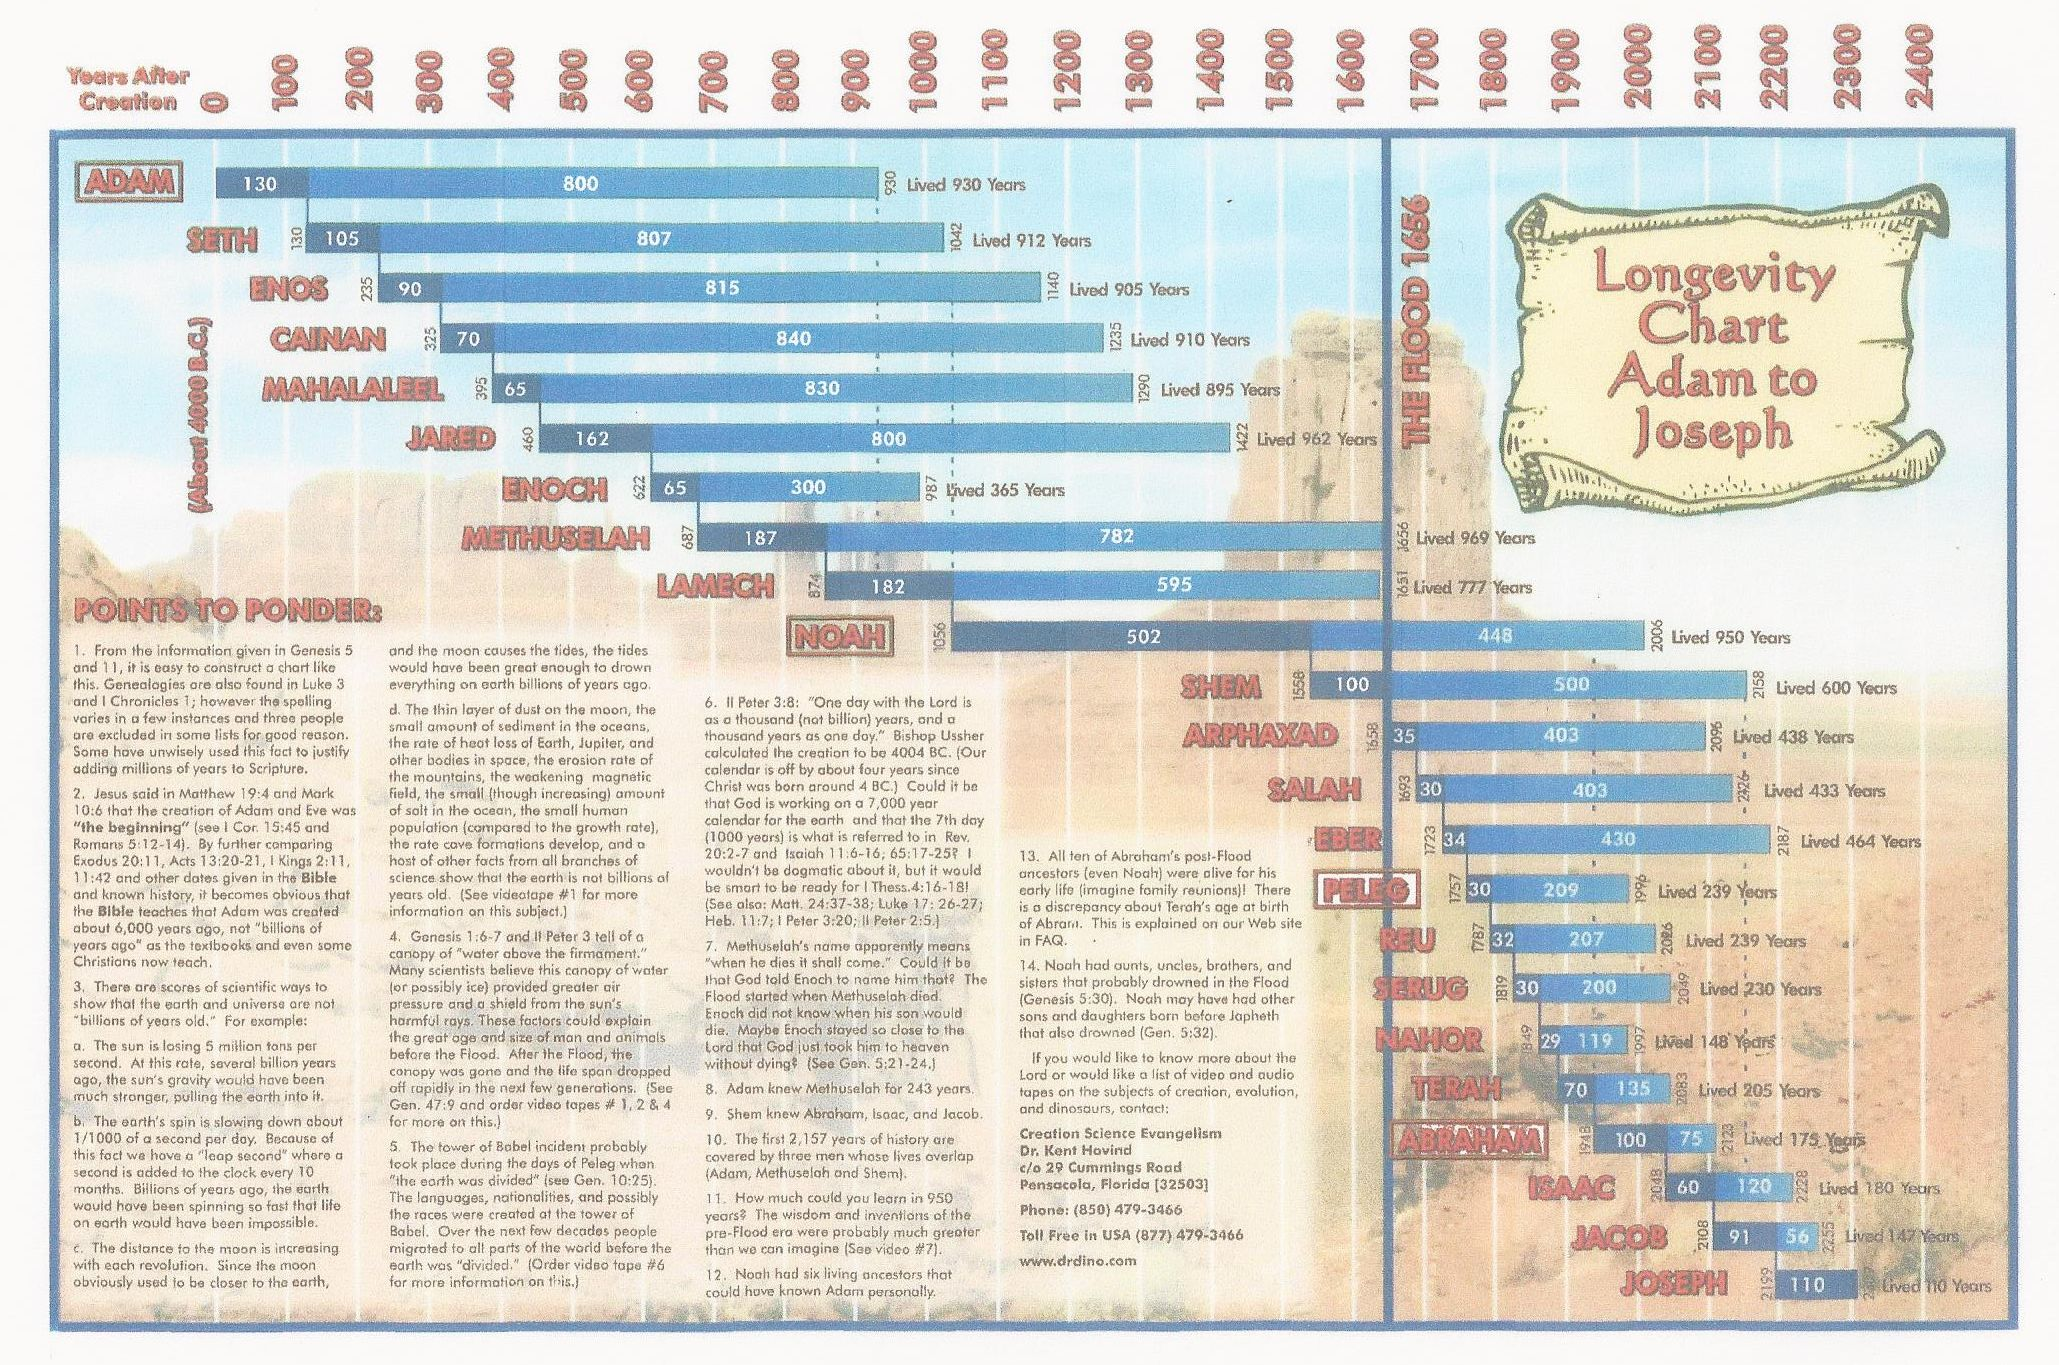 Longevity Chart – Adam to Joseph (pdf)